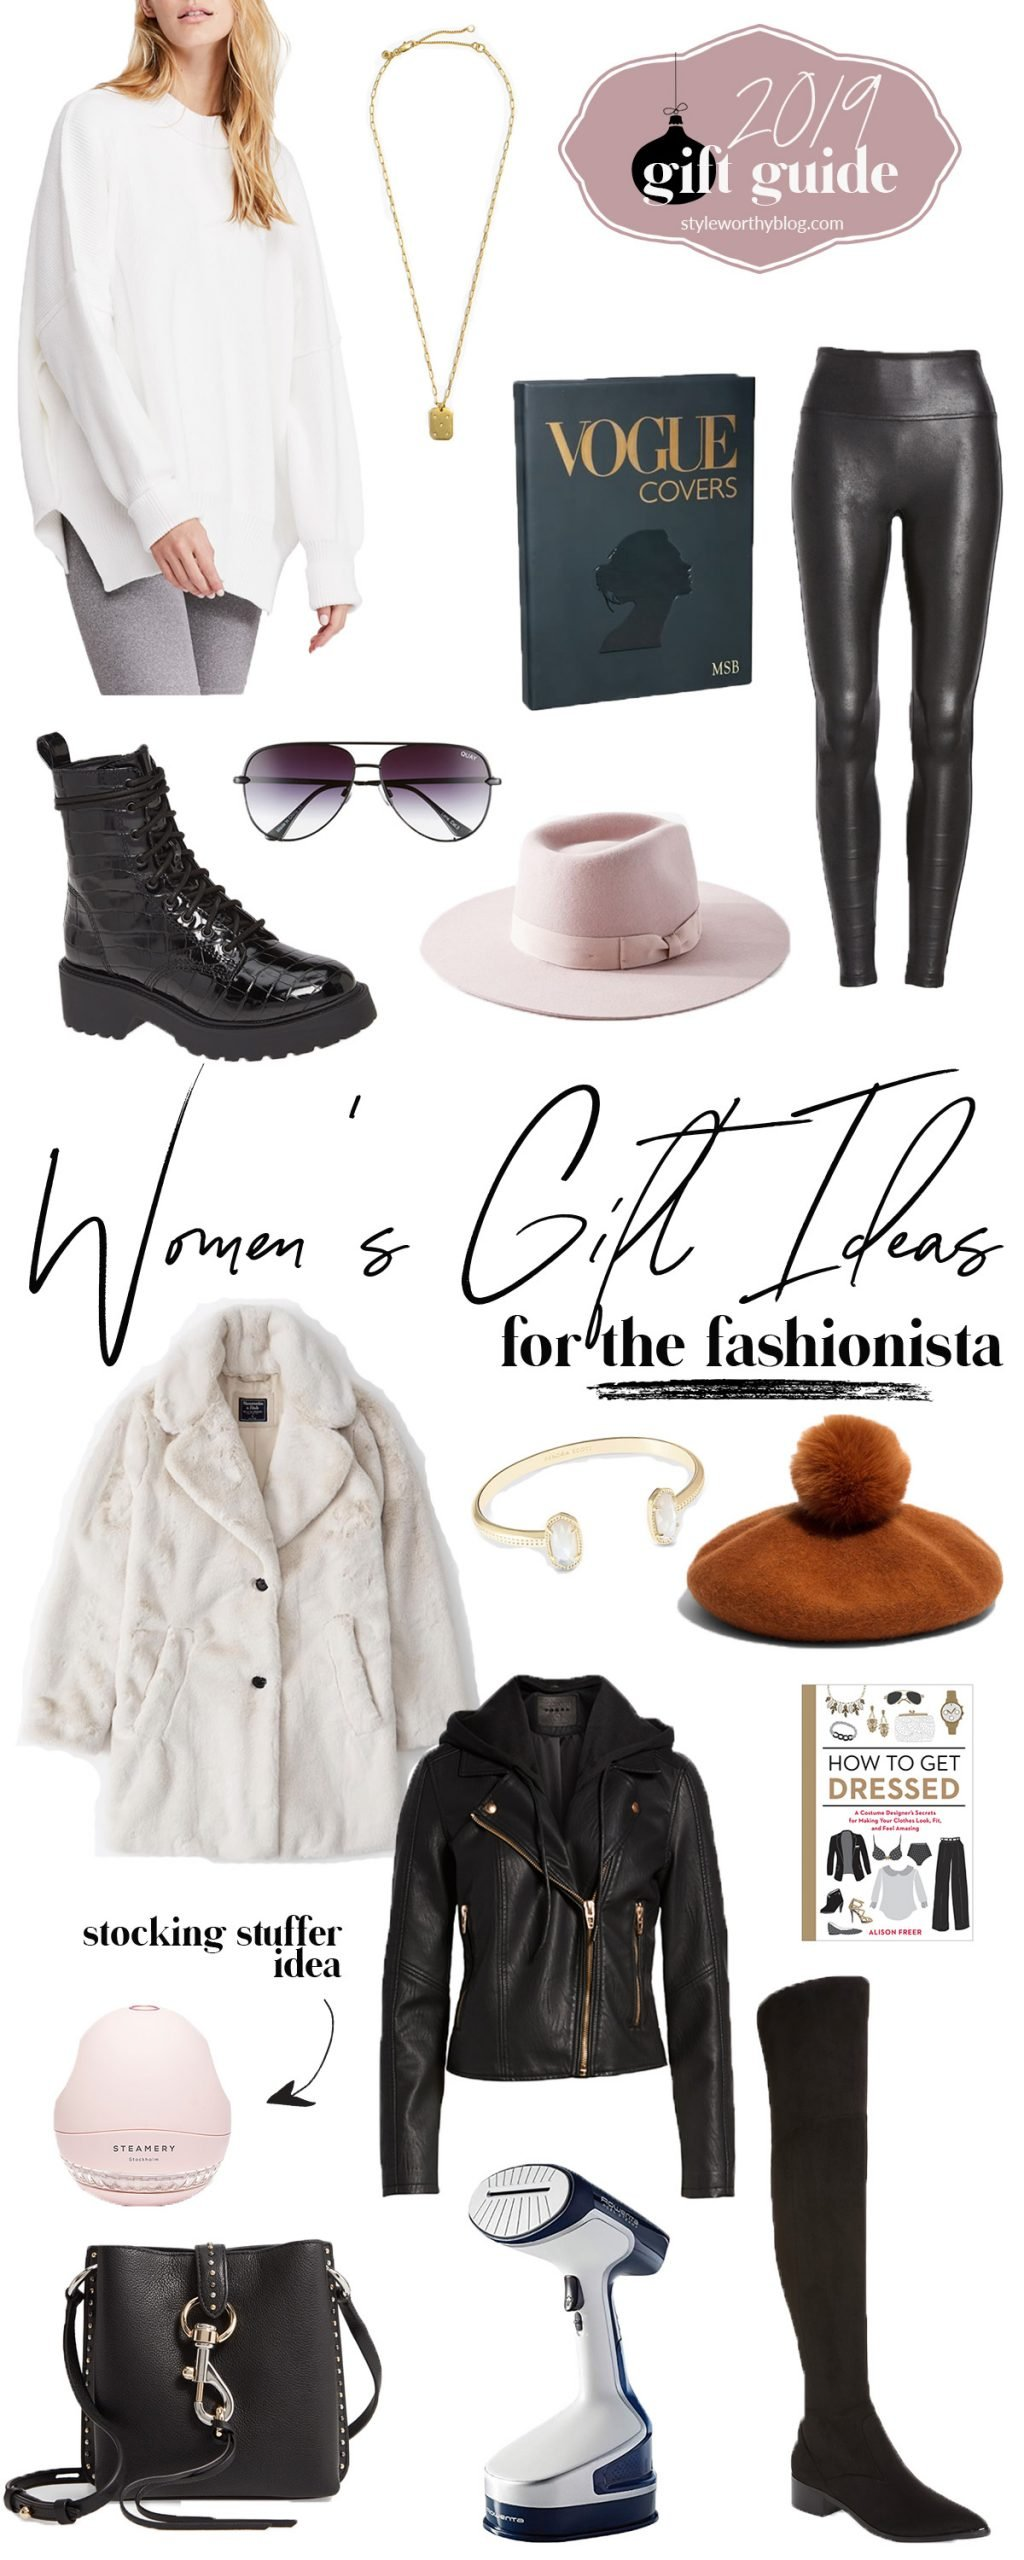 Women's gift guide. Gift ideas for the fashionista